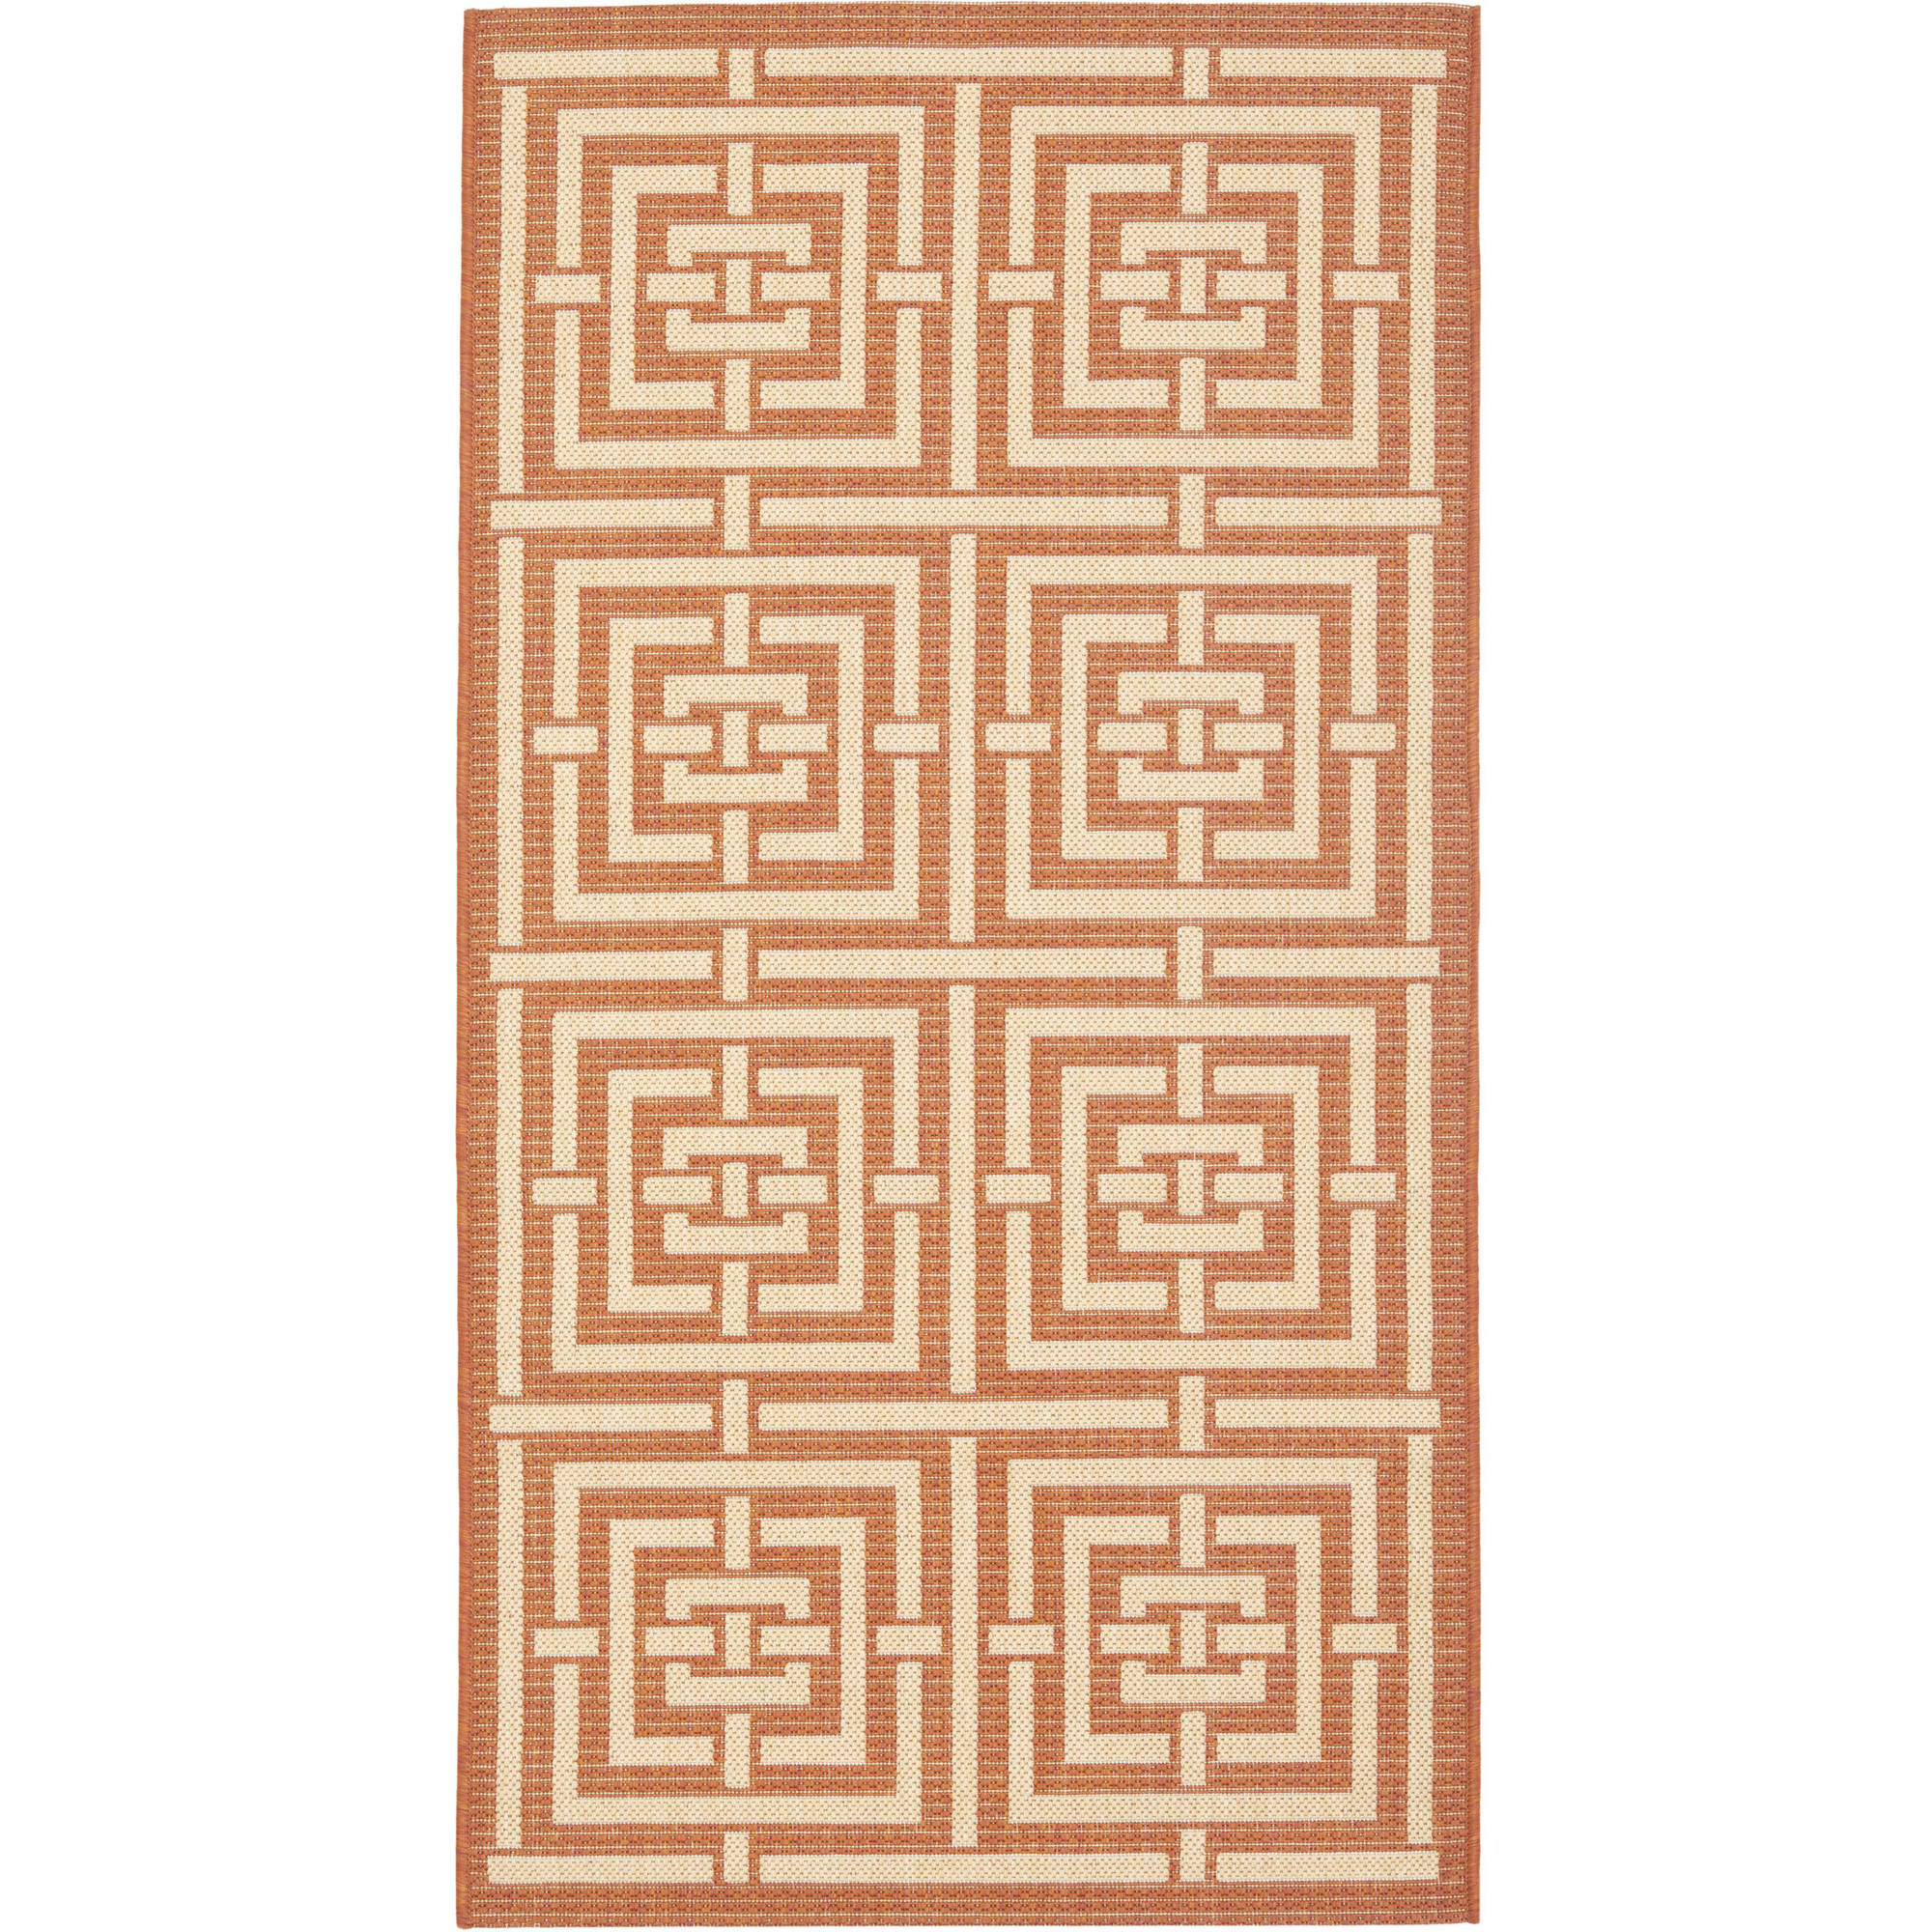 Safavieh Courtyard Ariana Indoor/Outdoor Area Rug